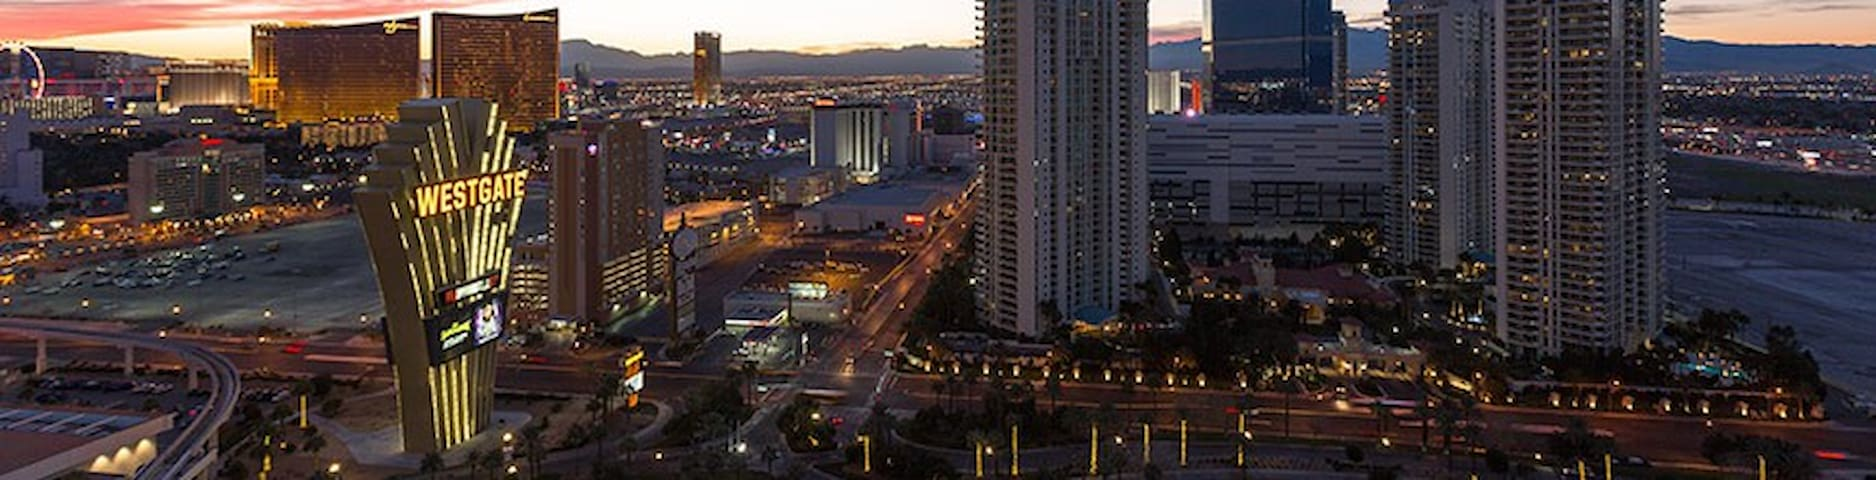 Las Vegas Resort & Casino! Right off Strip!